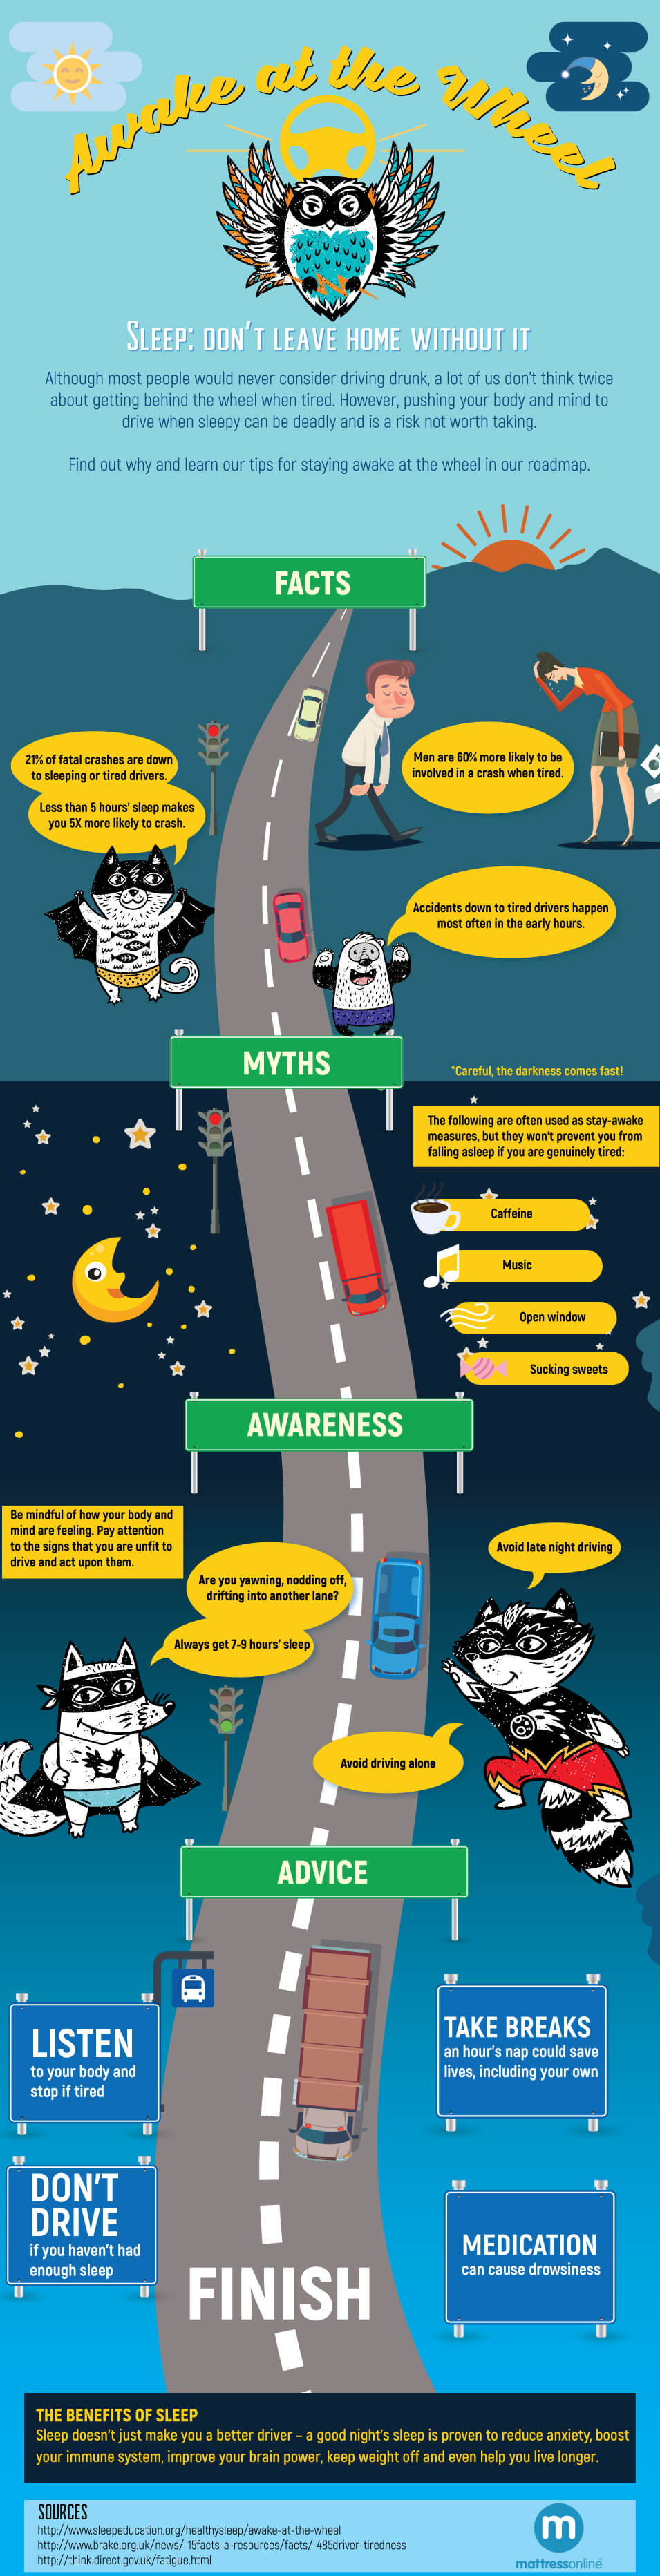 Infographic raising awareness of how dangerous driving whilst tired can be.